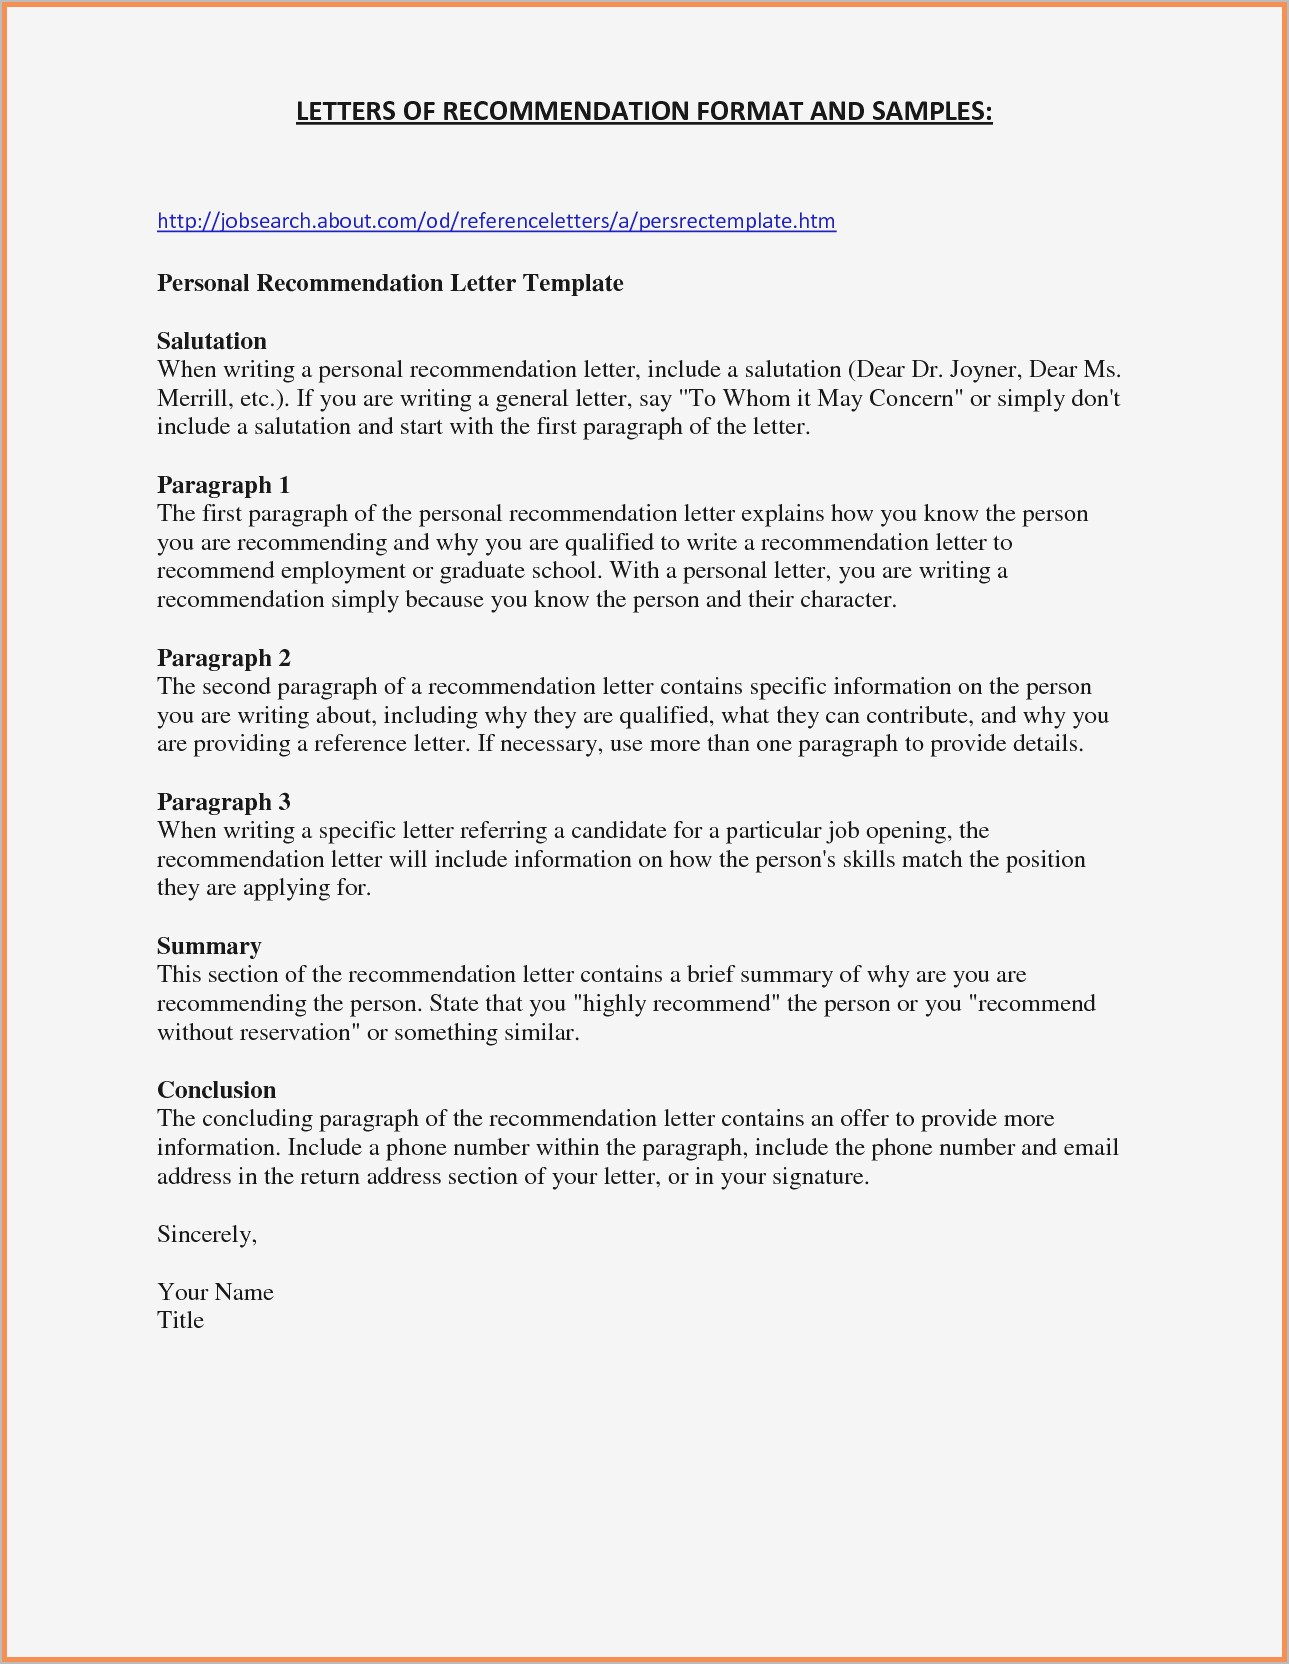 Letter to Seller From Buyer Template Collection | Letter Template